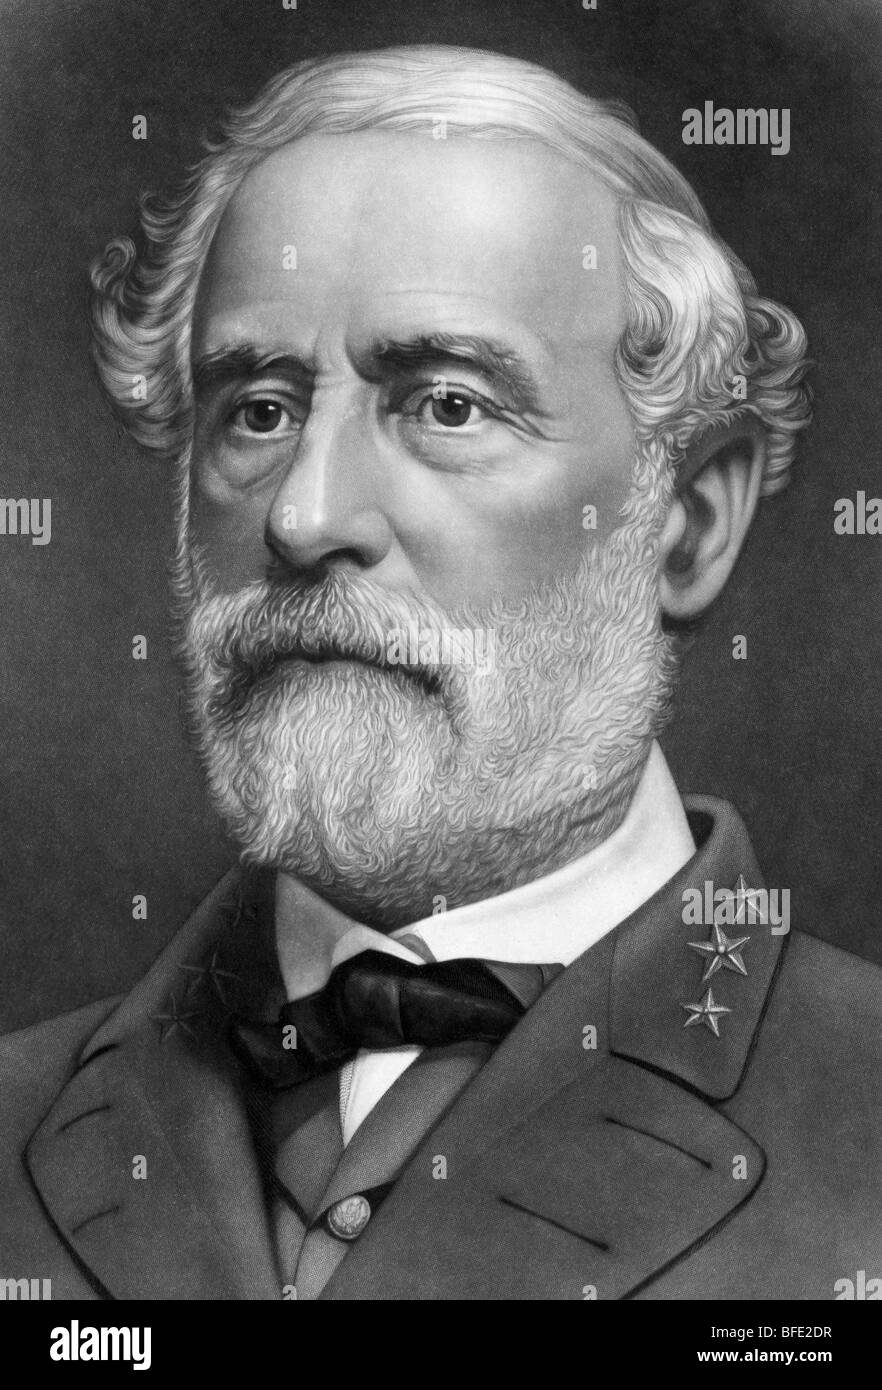 a biography of robert e lee a confederate general Robert edward lee general in chief of the confederate armies in the american civil war, robert edward lee (1807-1870) displayed strategic sense and tactical skill.